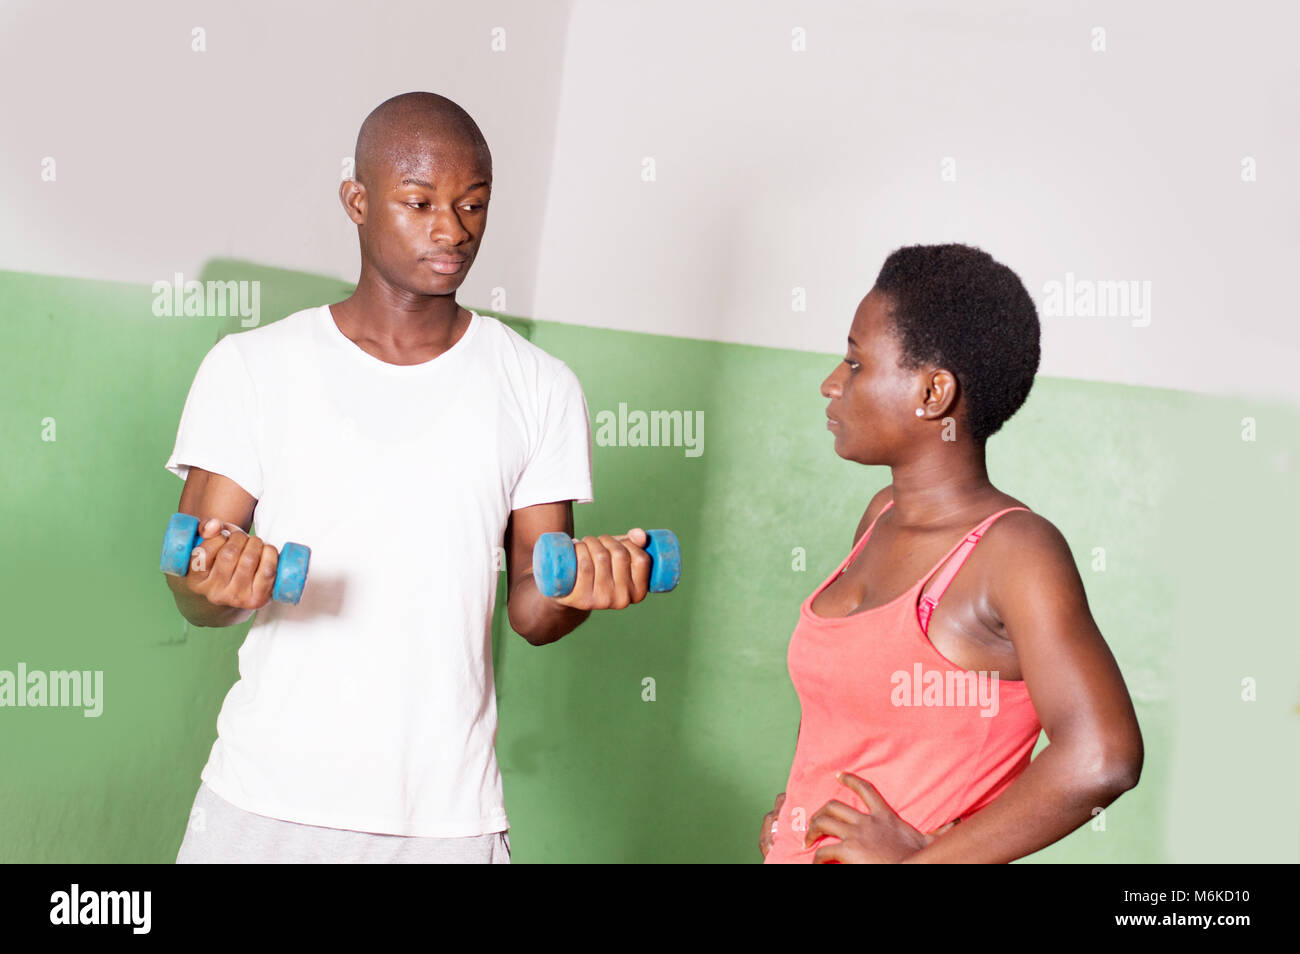 e trainer of the gym explains to the young woman the benefits of raising the weights. - Stock Image